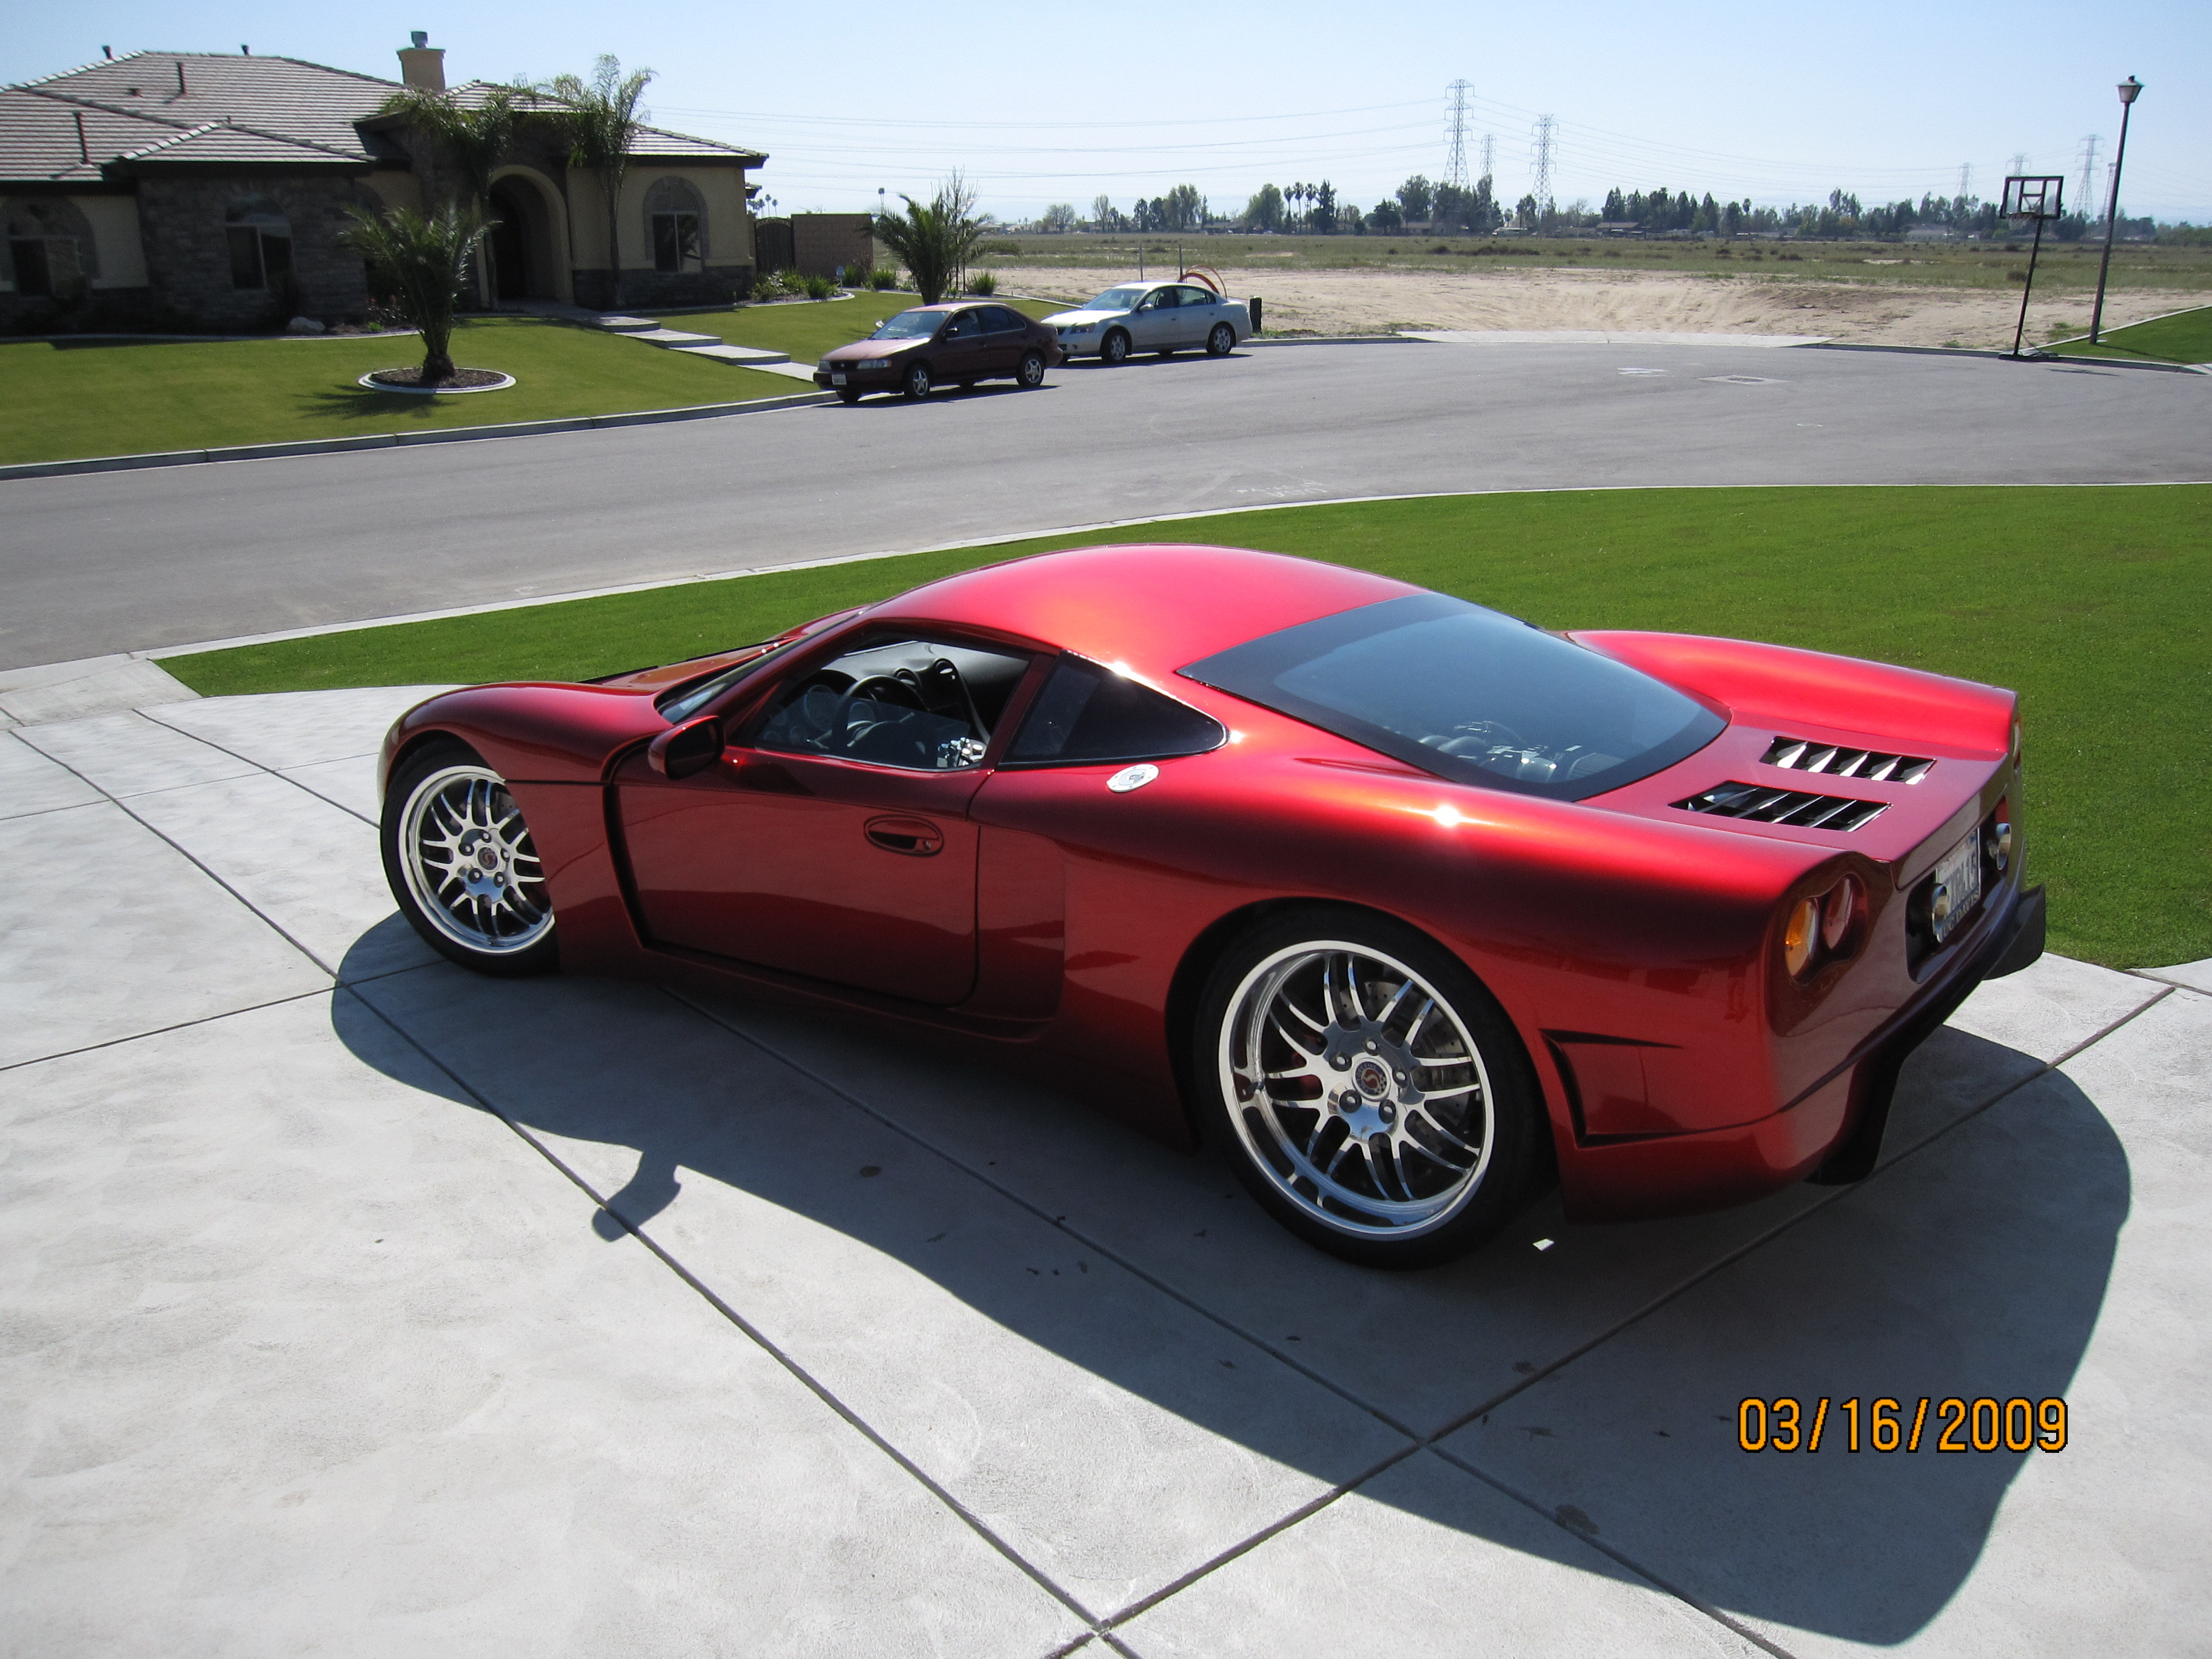 jdpanero 2009 Factory Five GTM 13043433